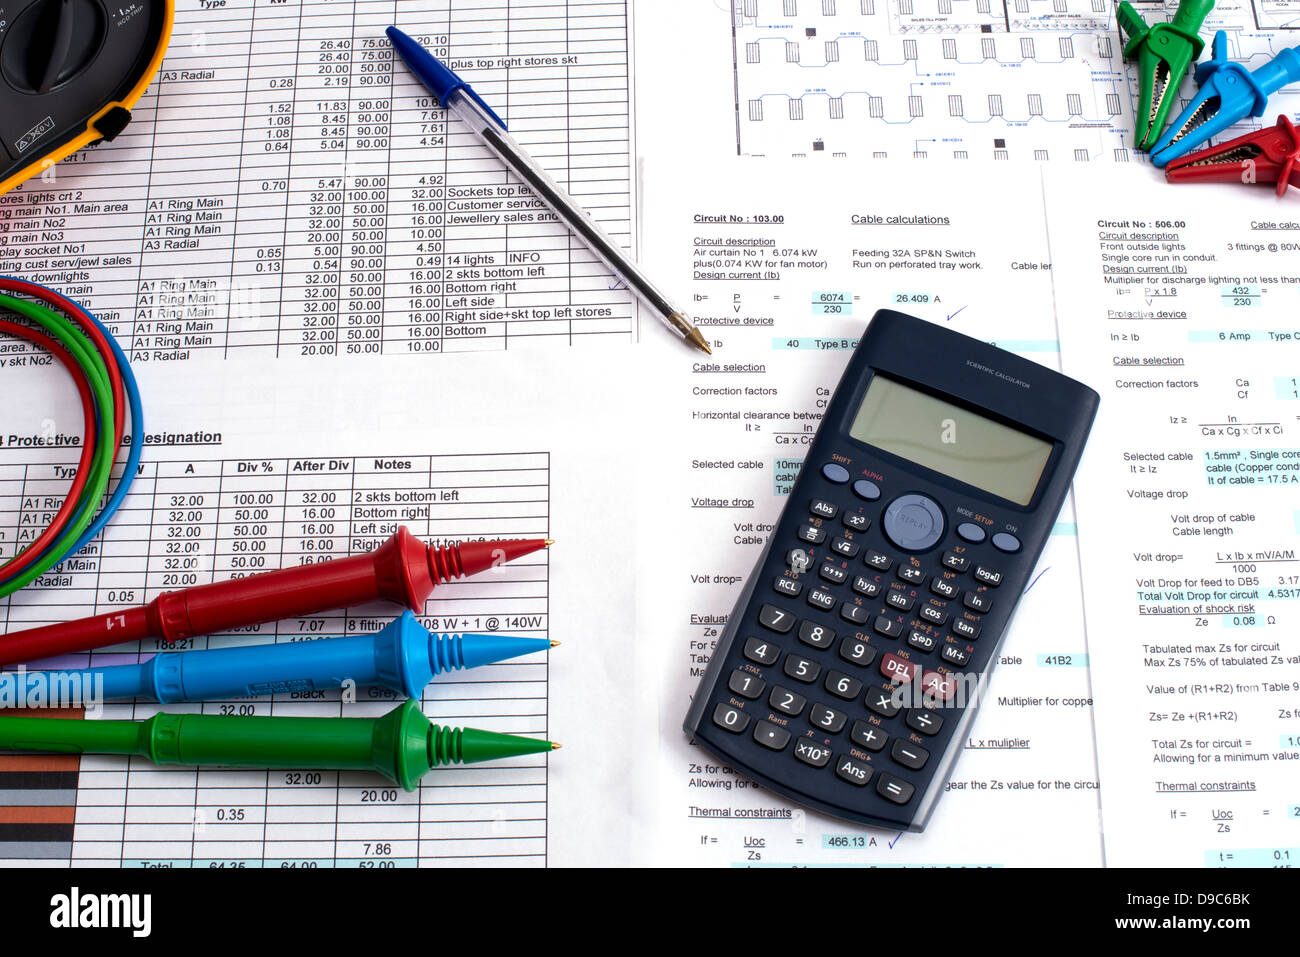 Electrical installation calculations testing project Stock Photo ...